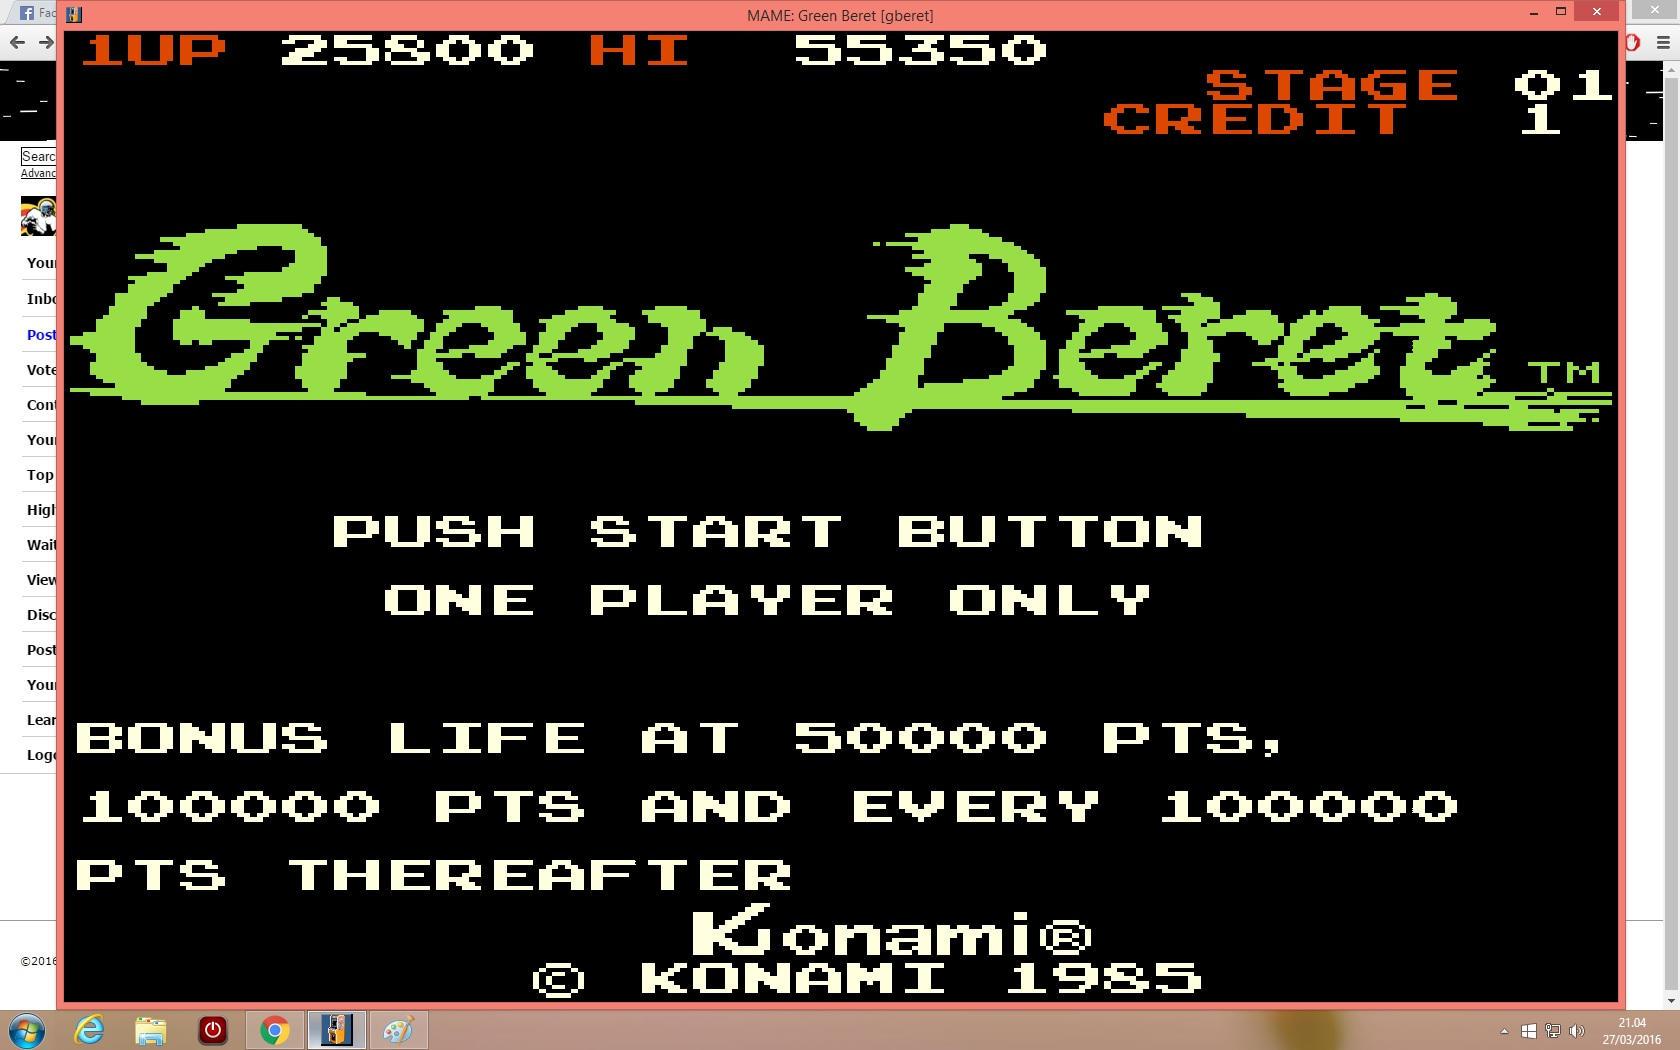 Green Beret 25,800 points